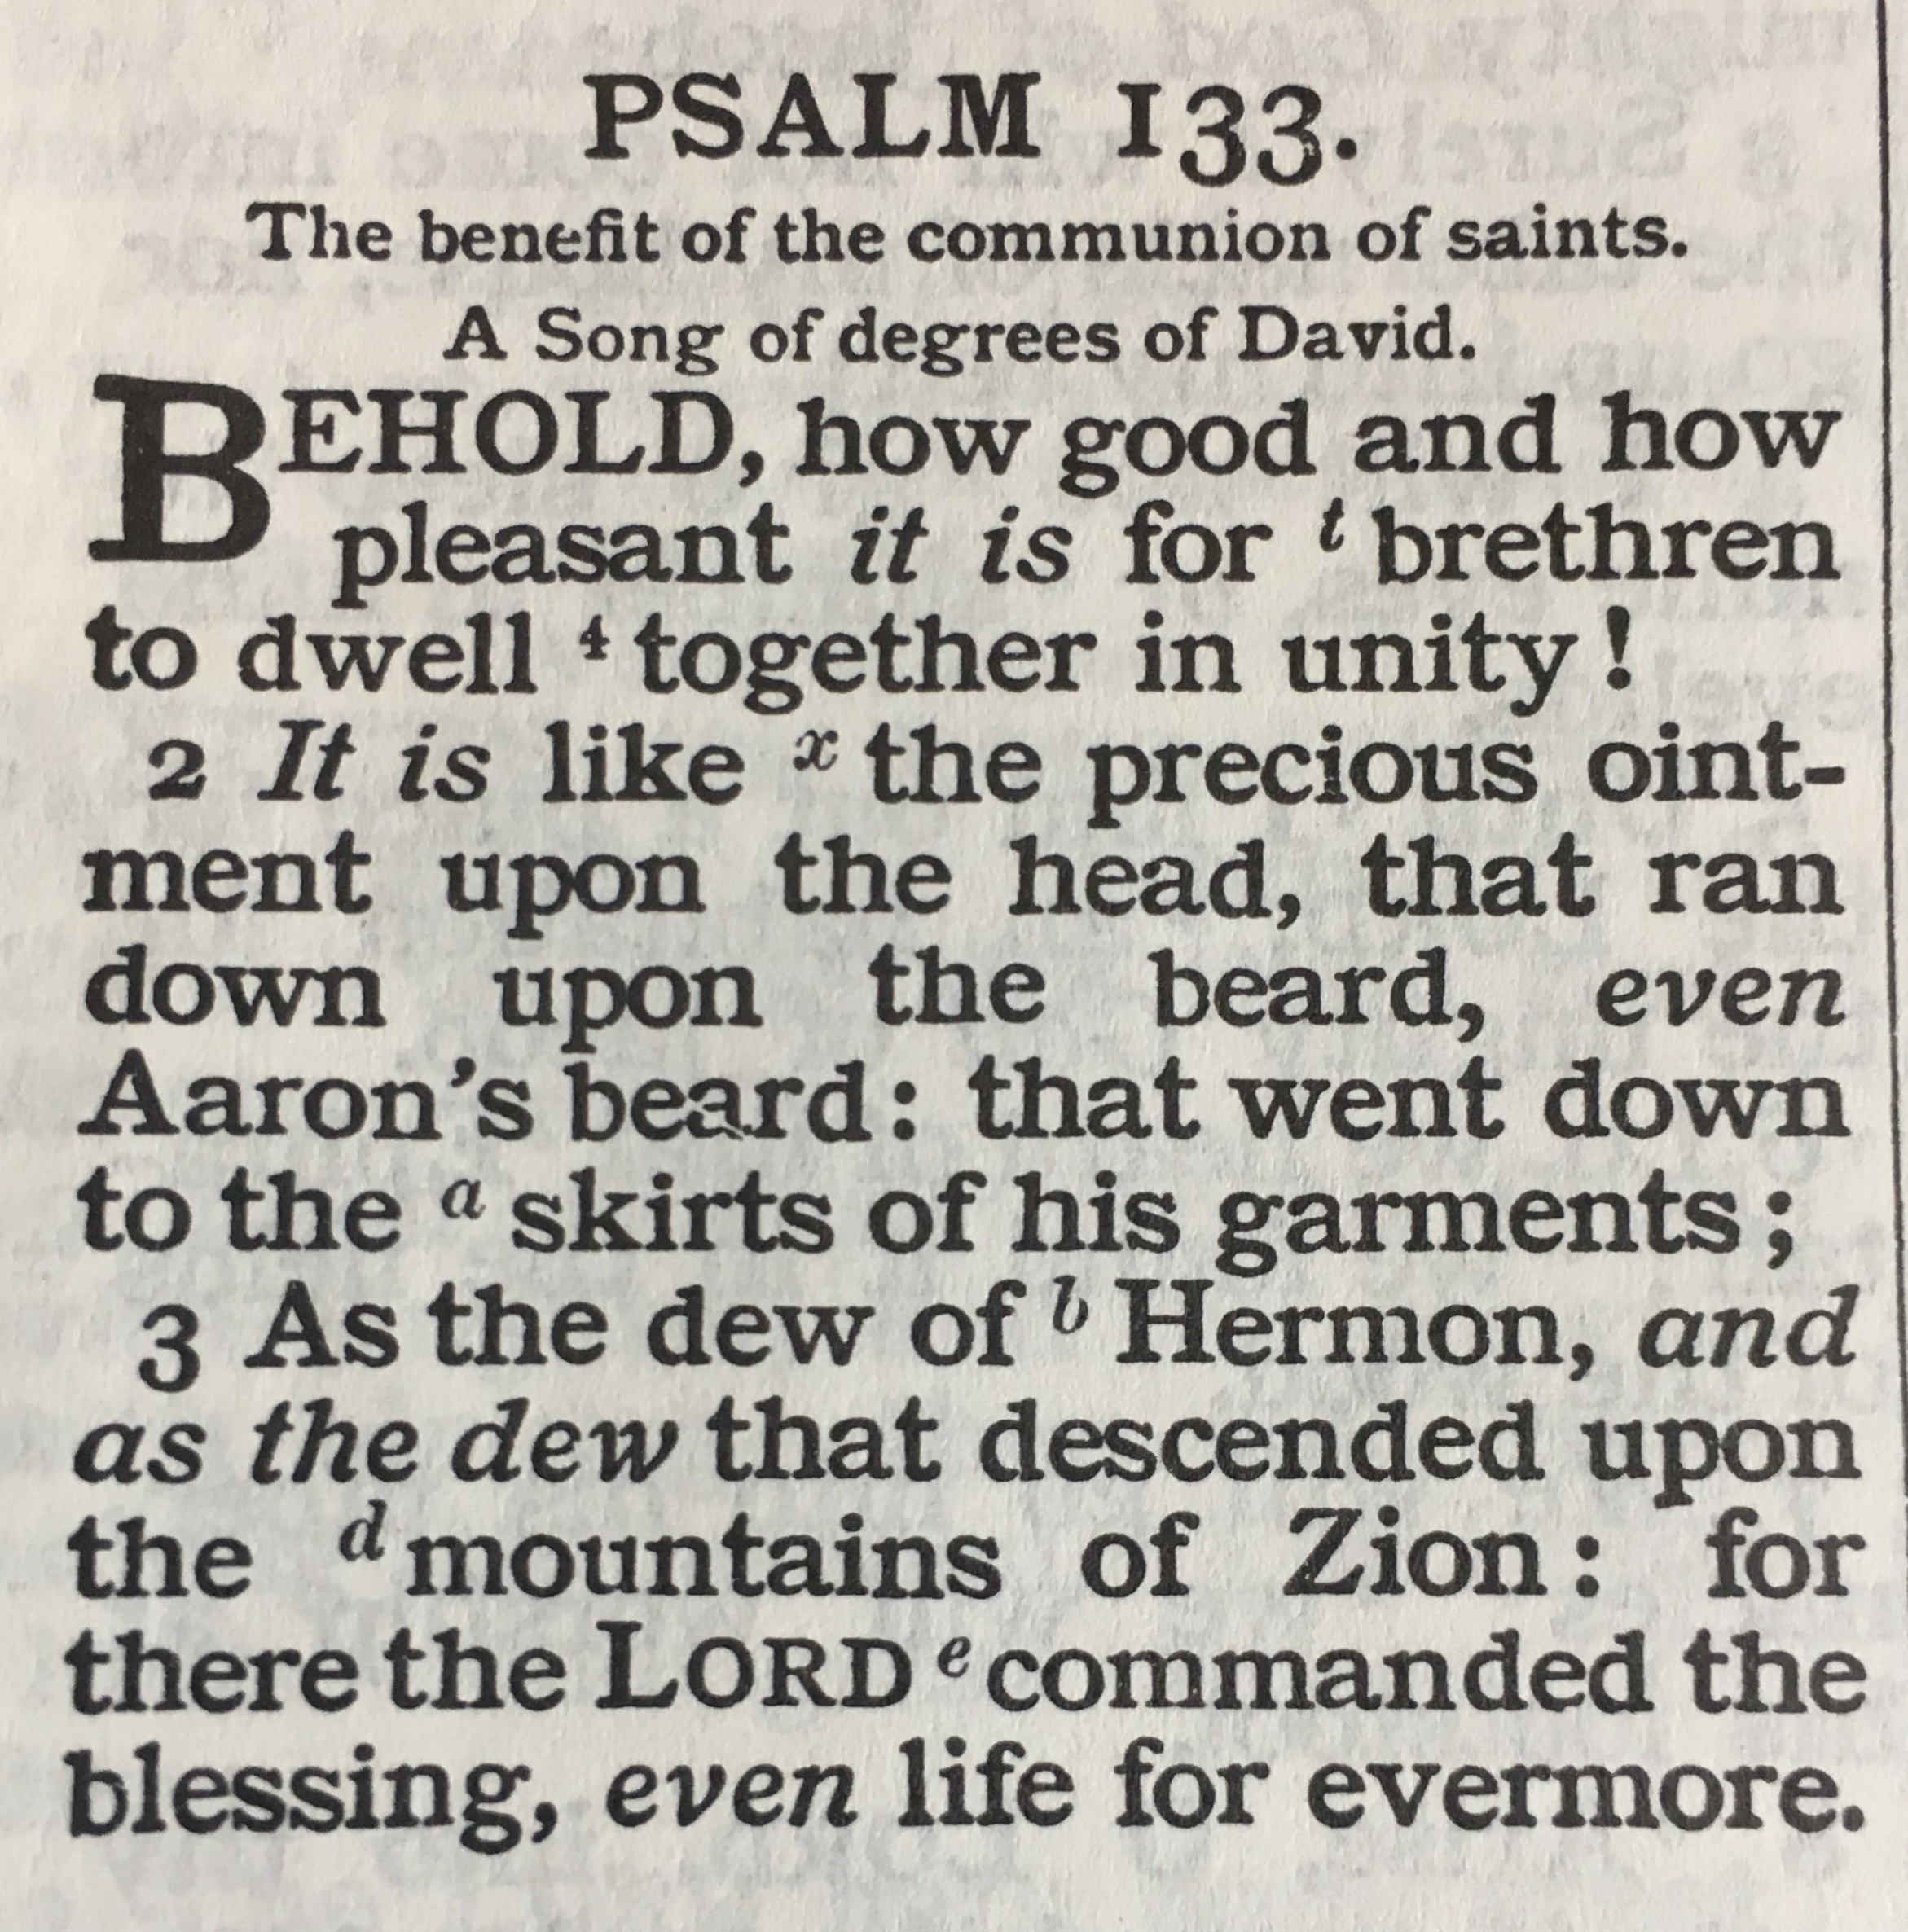 behold how good and how pleasant it is for brethren to dwell together in unity